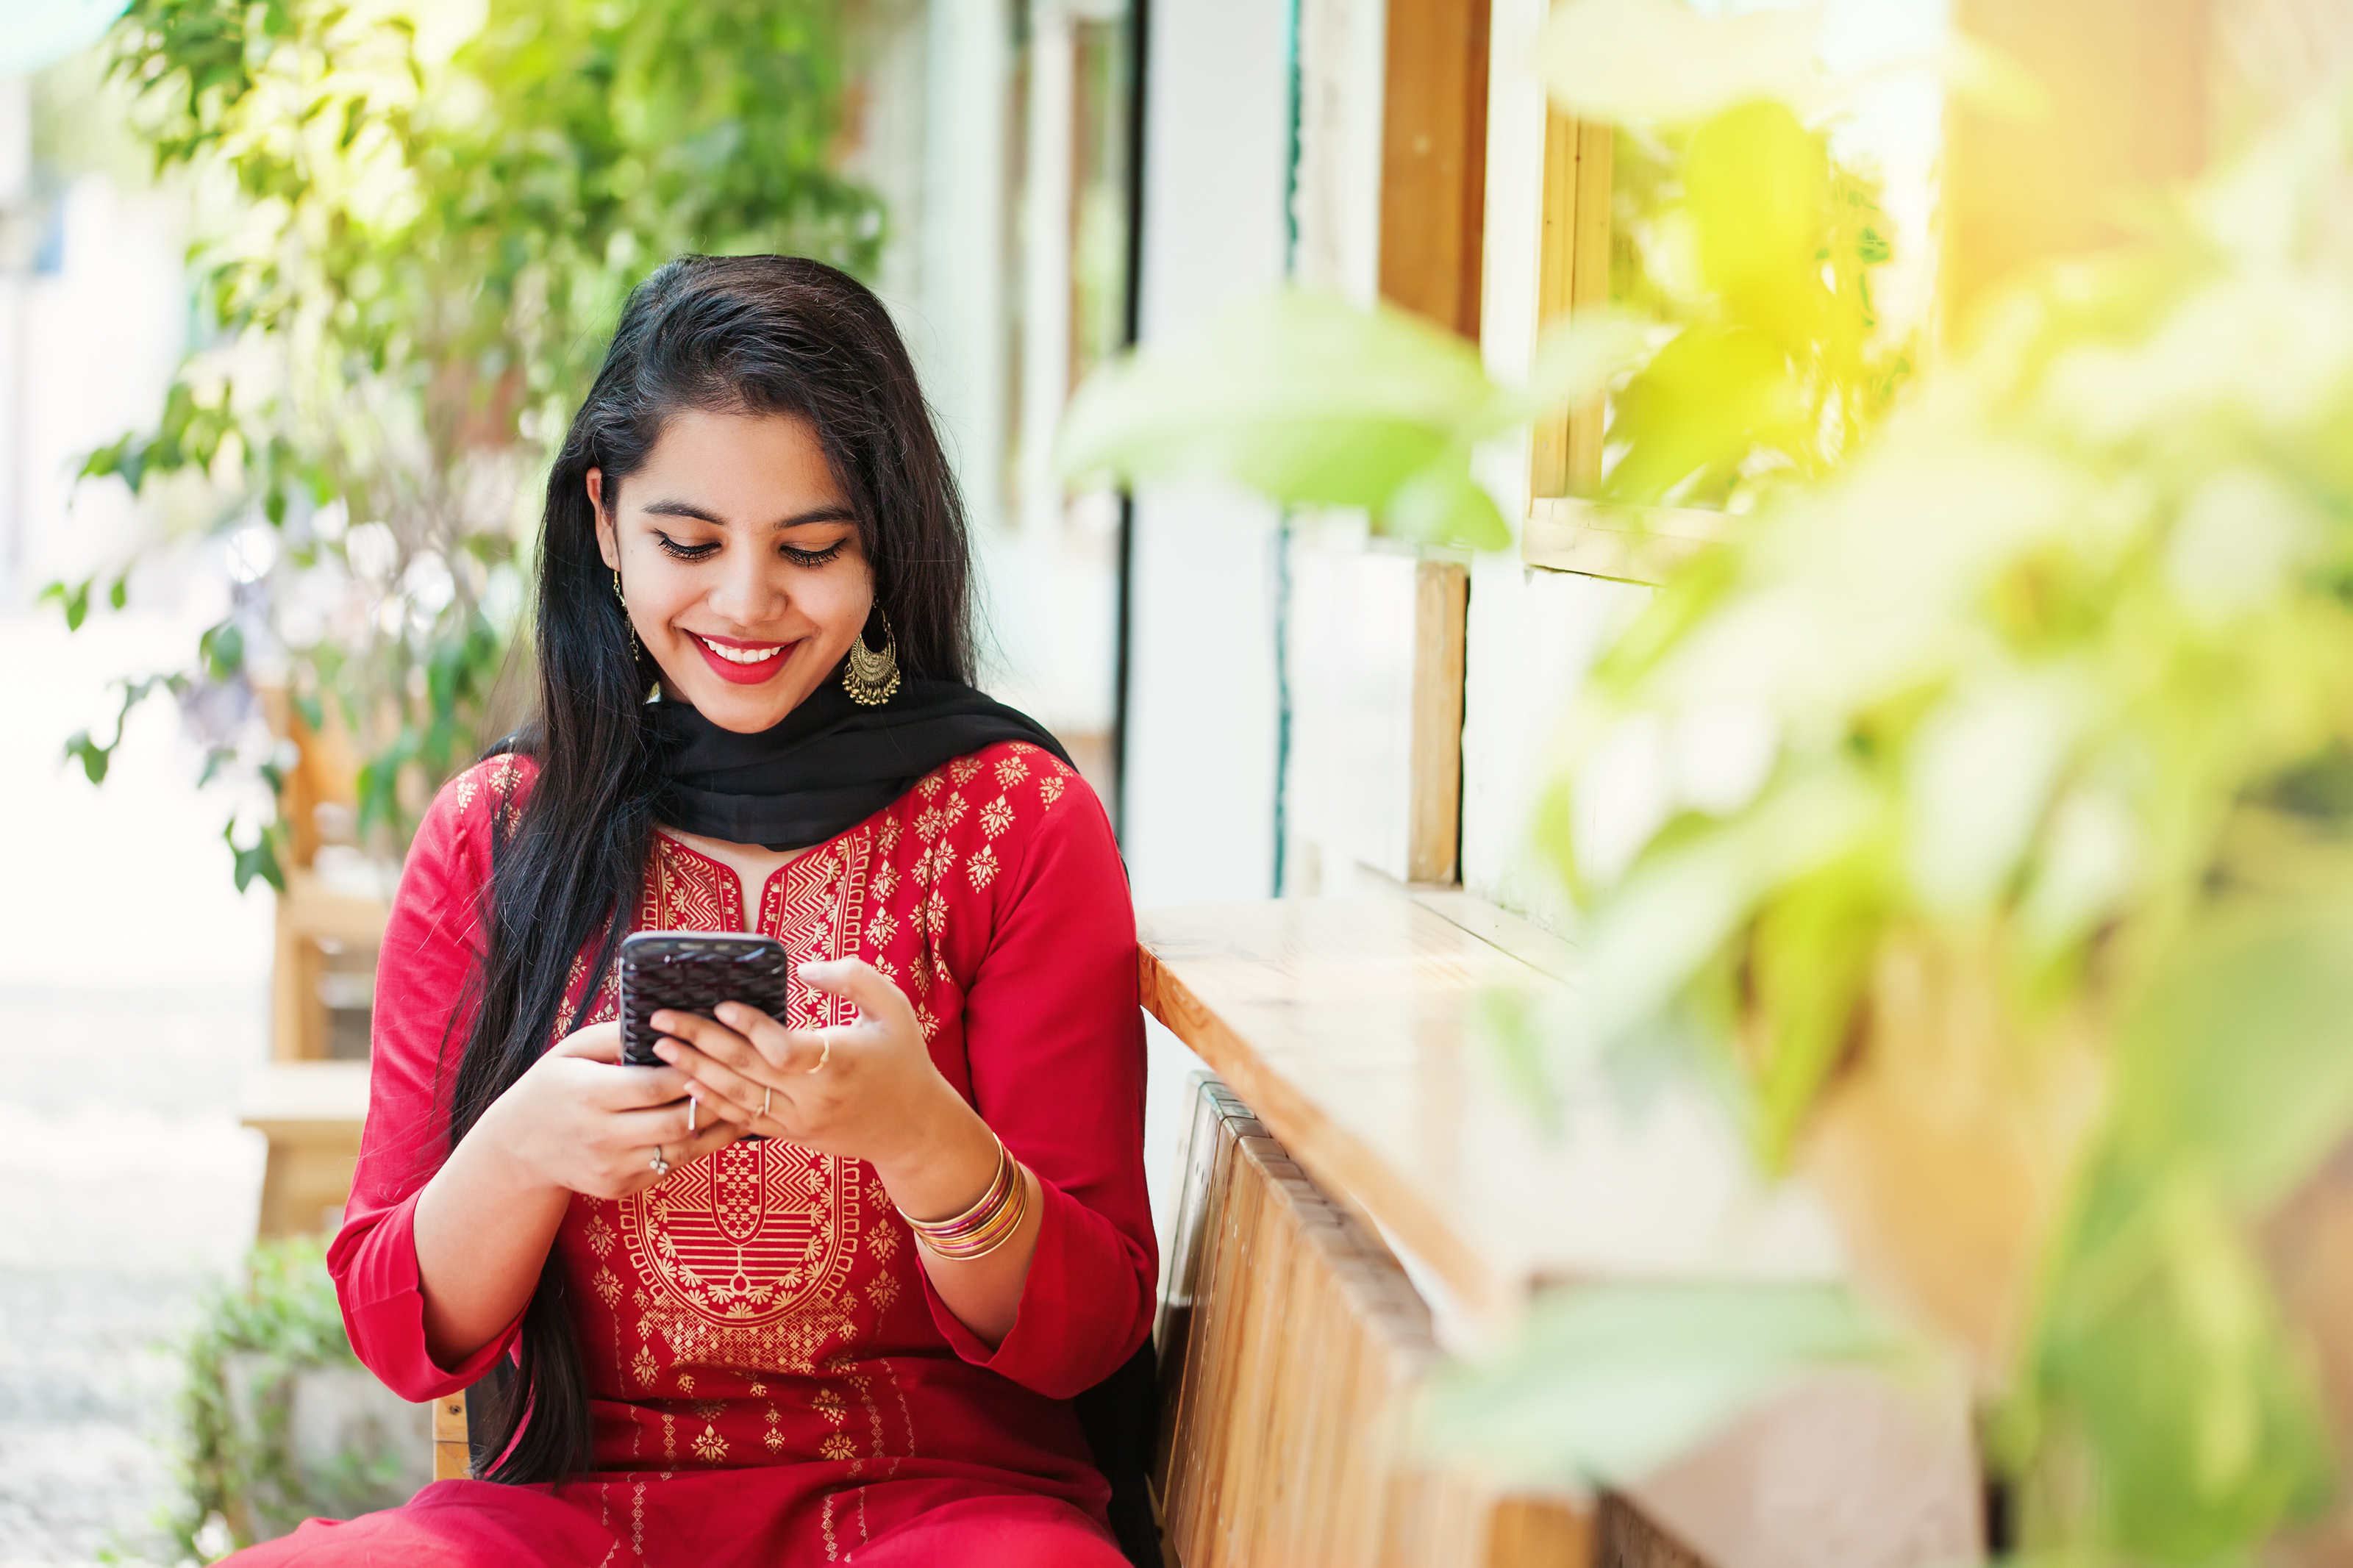 Indian Dating Girl on Phone